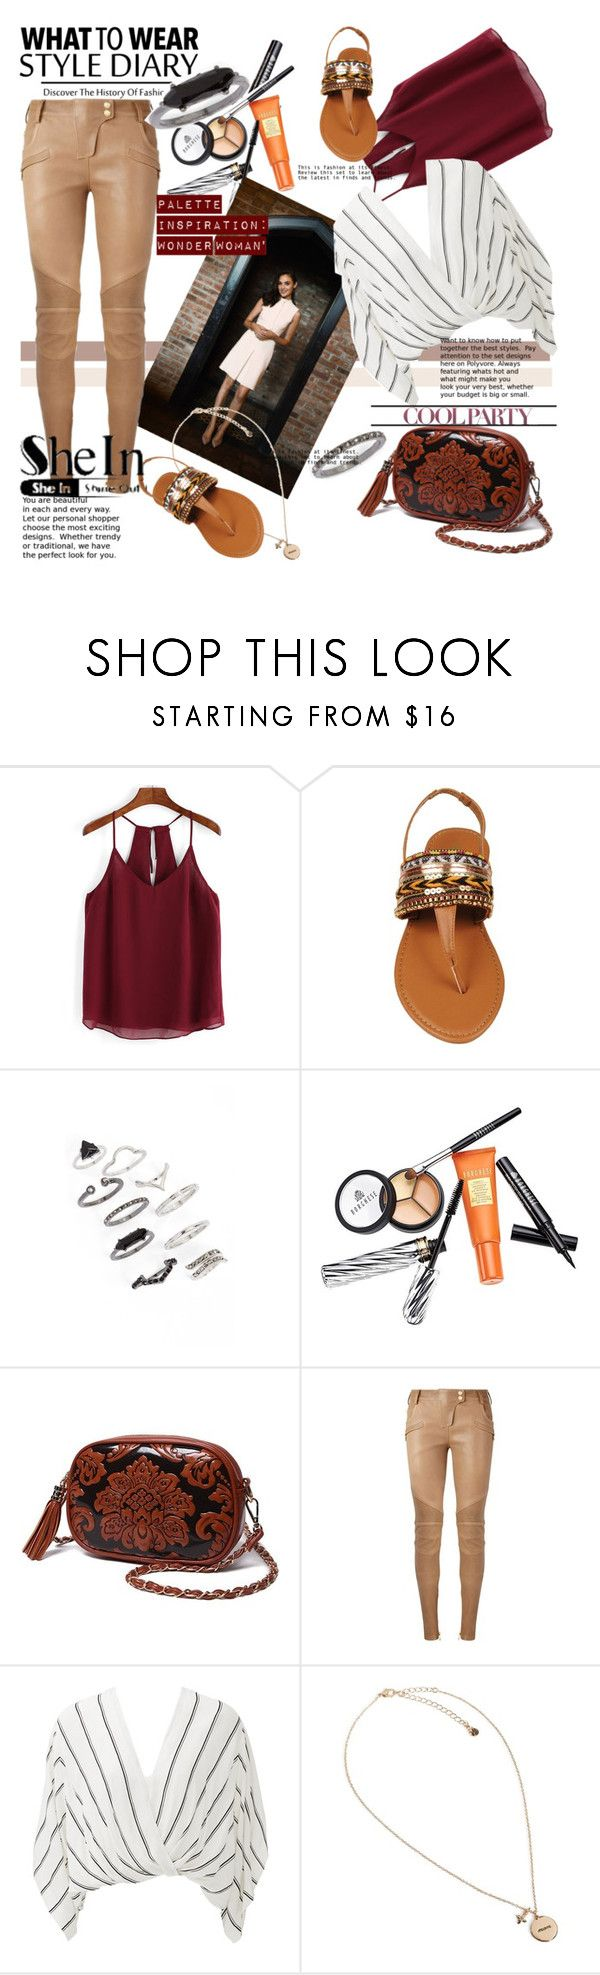 """""""Gal Gardot"""" by cranetattoo ❤ liked on Polyvore featuring Topshop, Borghese, Balmain, Free People and Vera Bradley"""